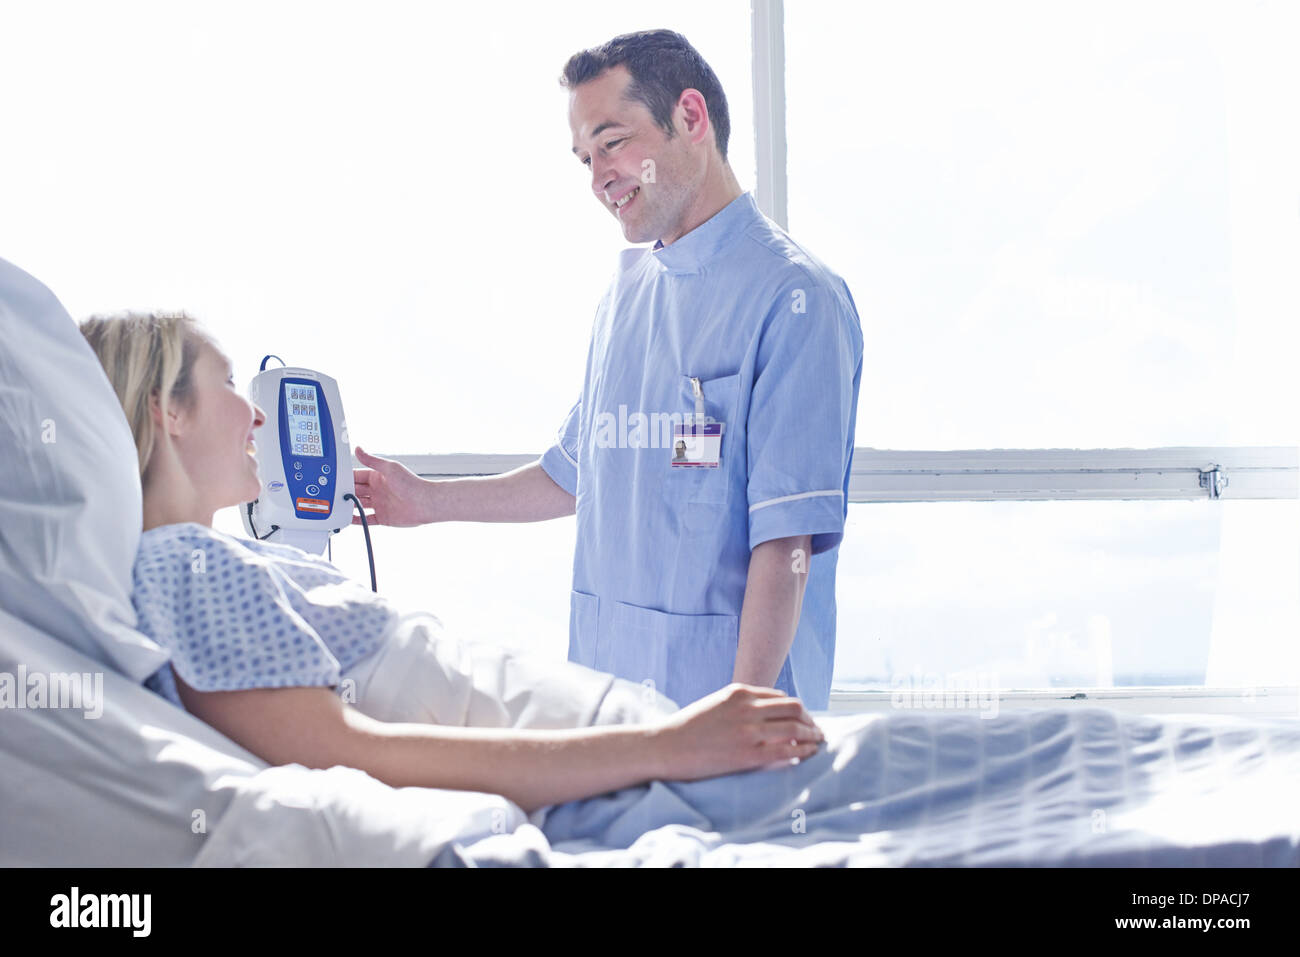 Nurse taking patient's blood pressure - Stock Image